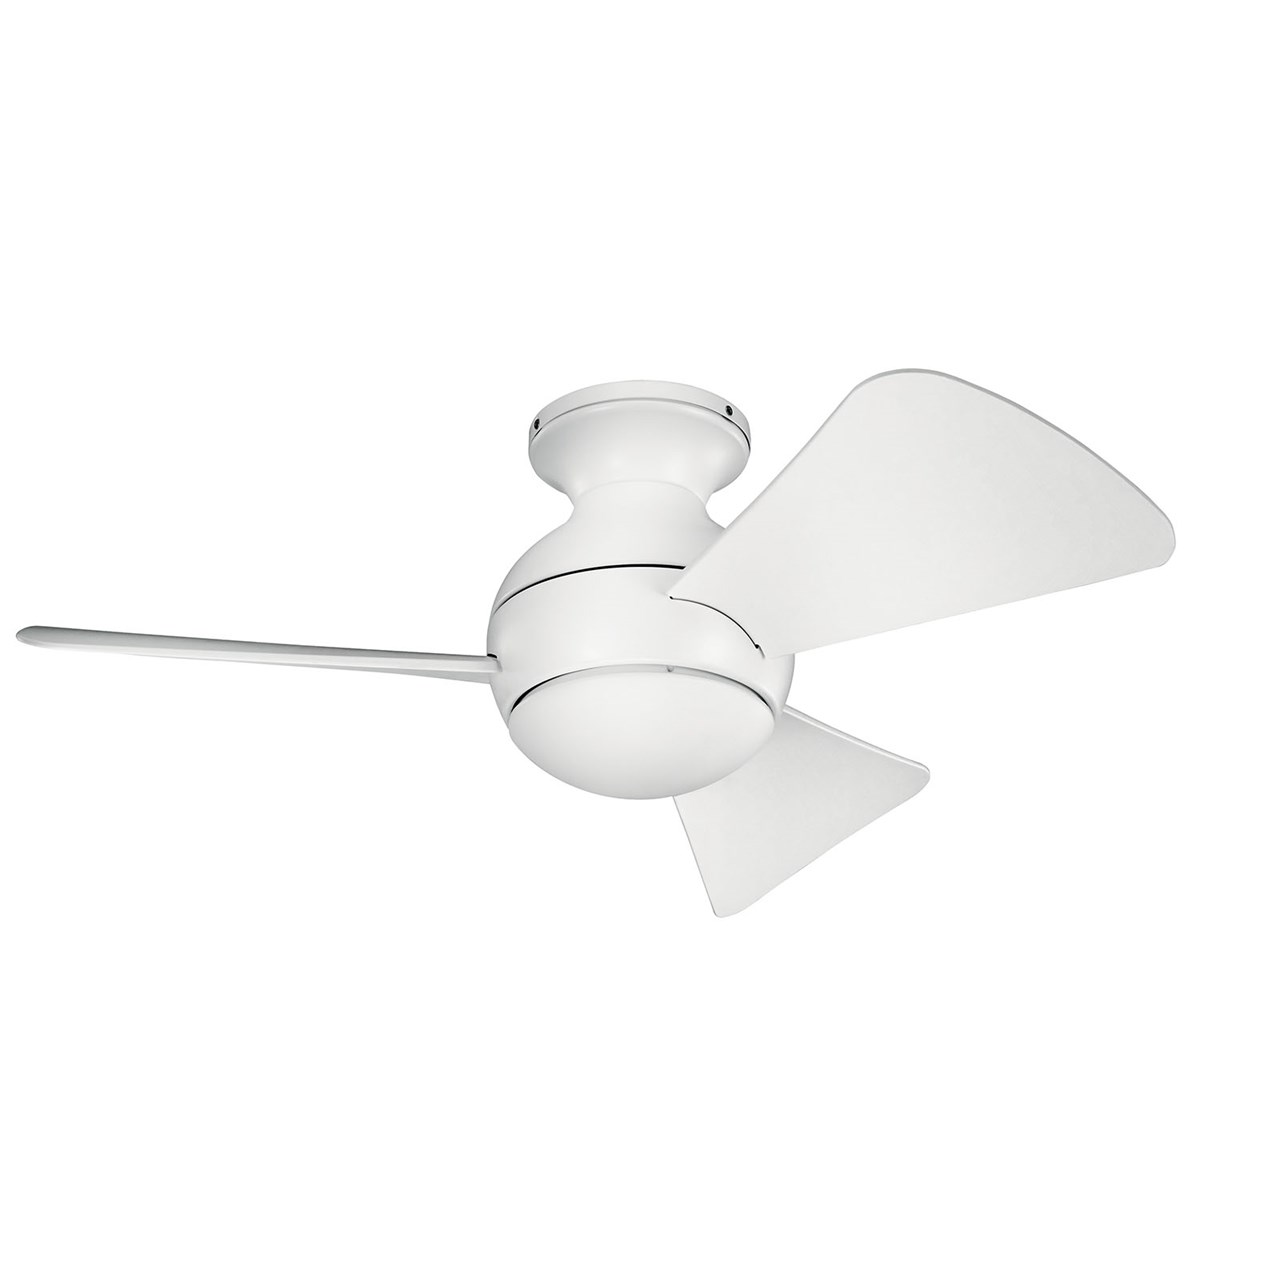 "Sola LED 34"" Fan Matte White"